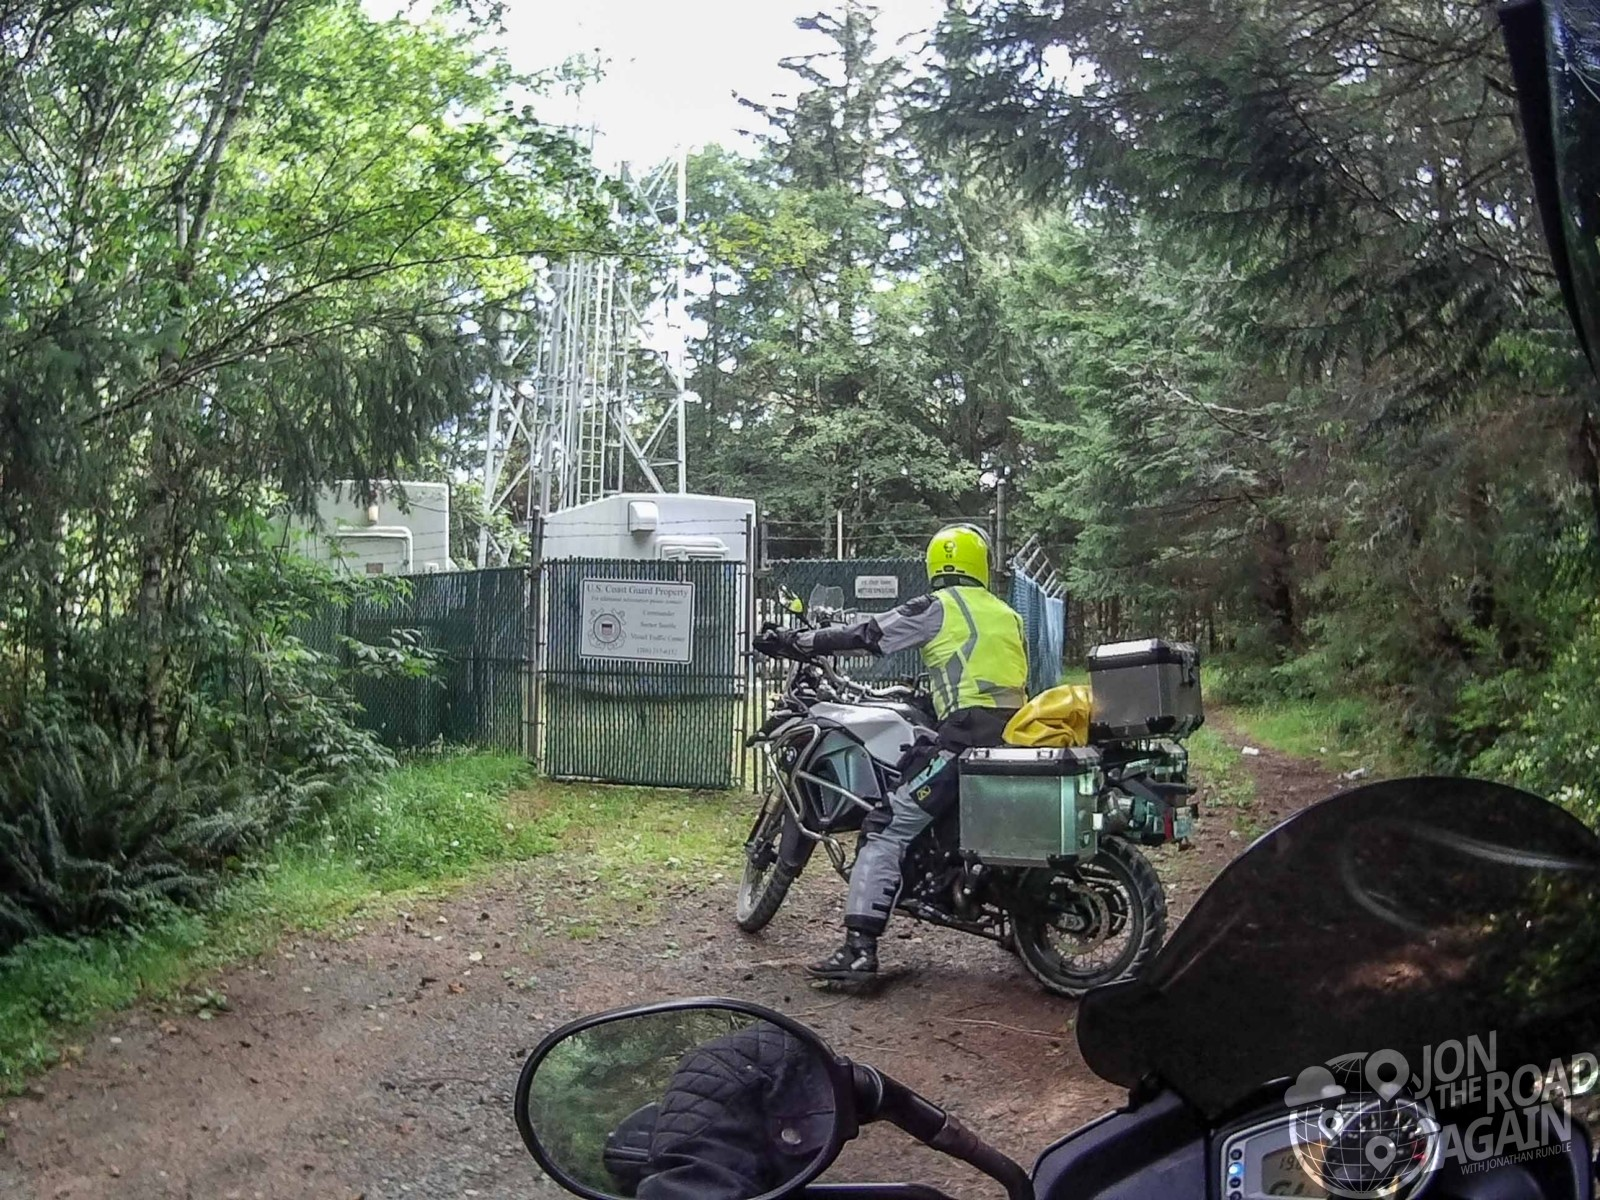 Riding motorcycles on Olympic Peninsula